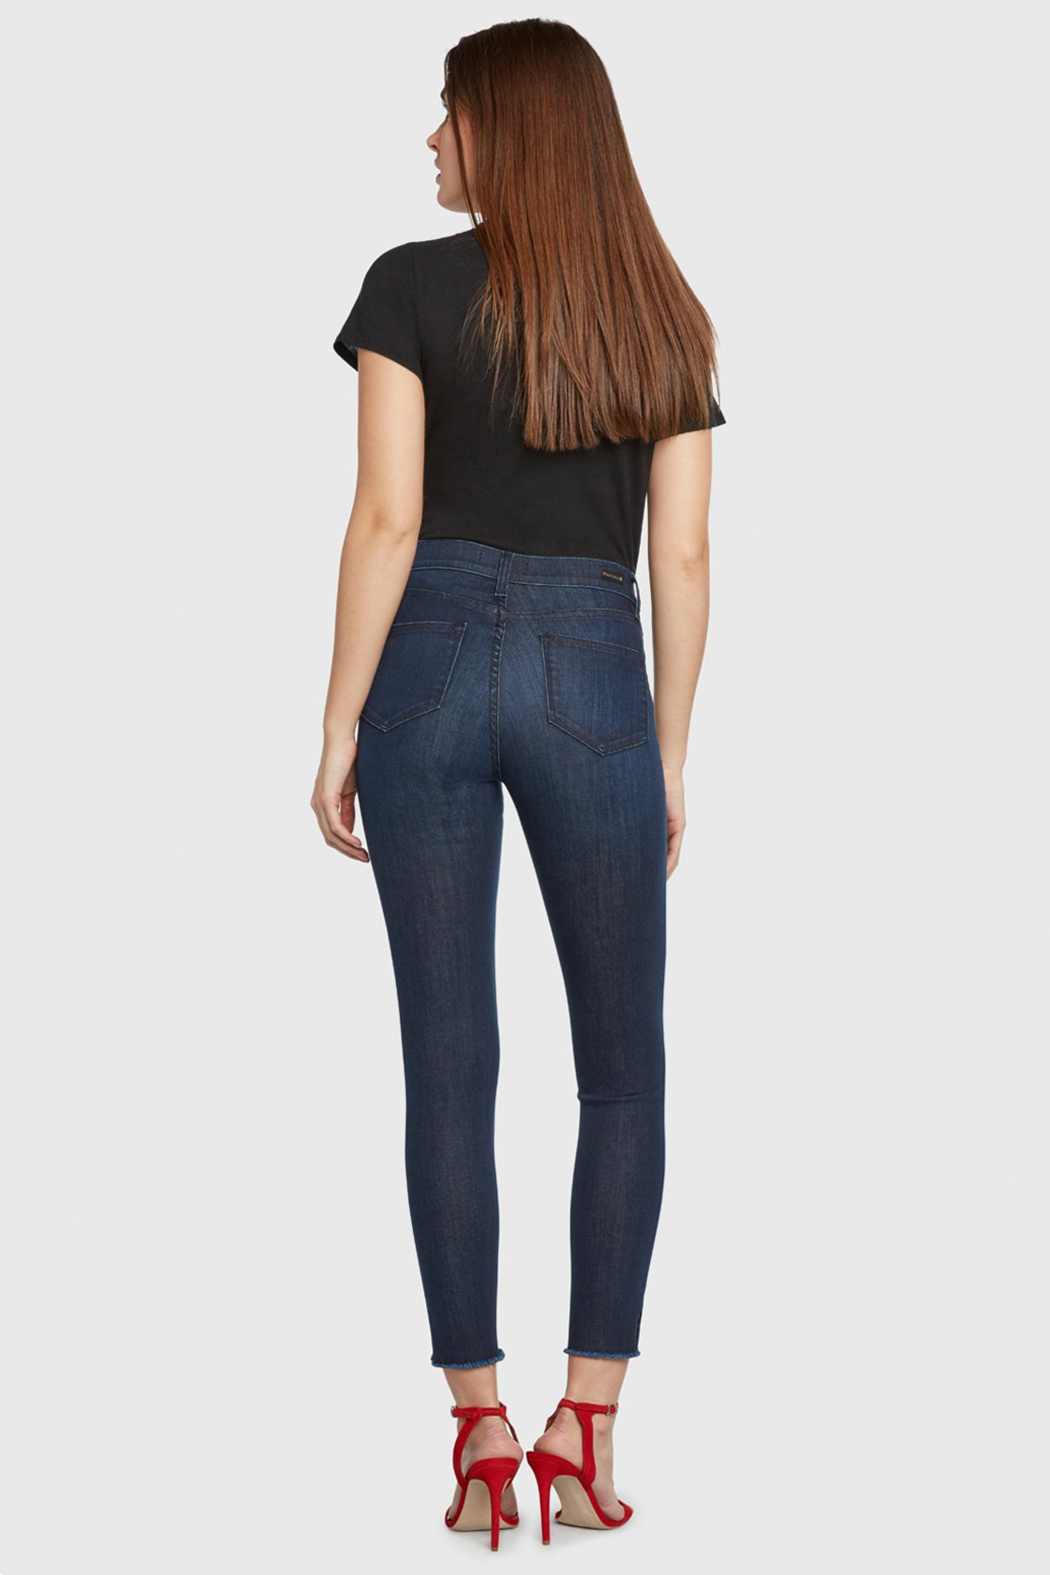 Principle Denim Principle Gem Skinny Jeans - Sweet Dreams - Side Cropped Image